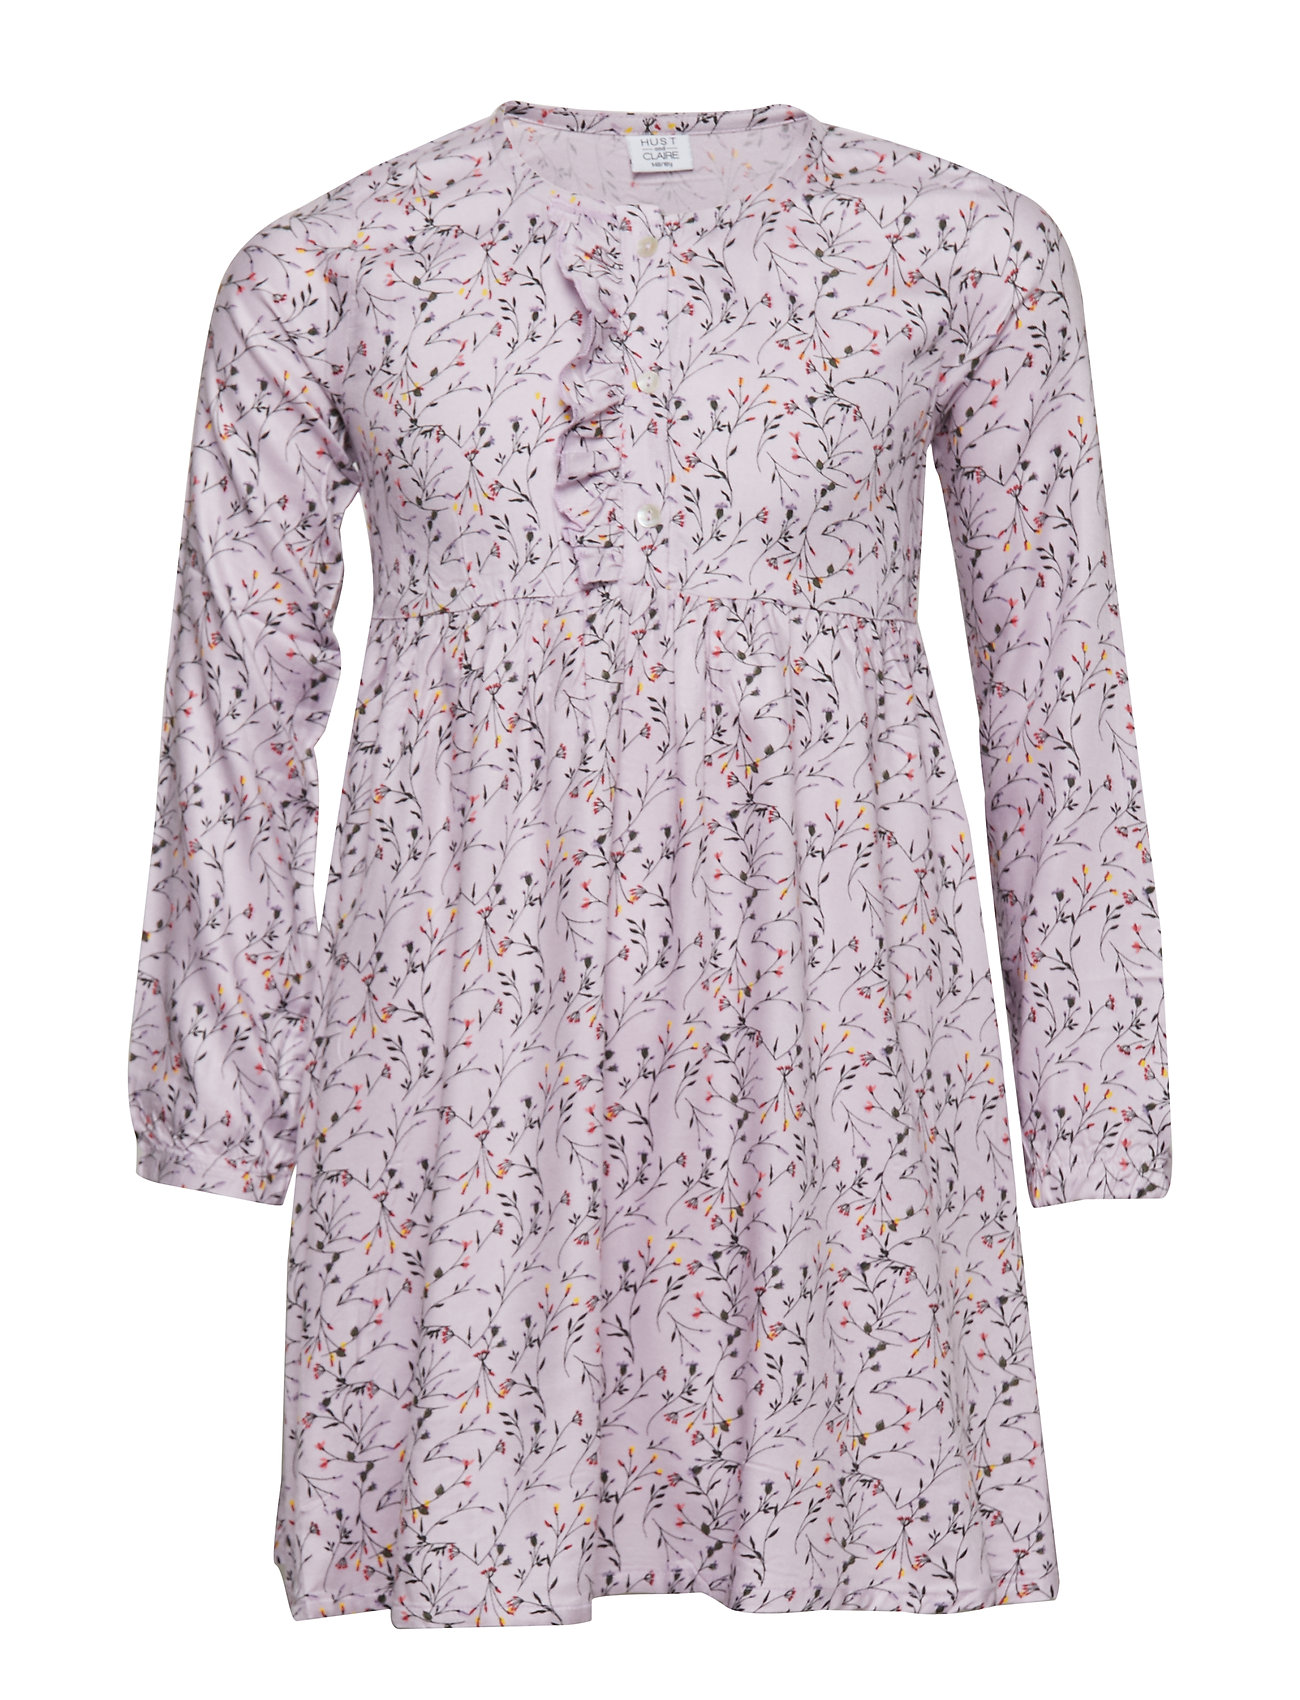 Hust & Claire Debo - Dress - LILAC SNOW